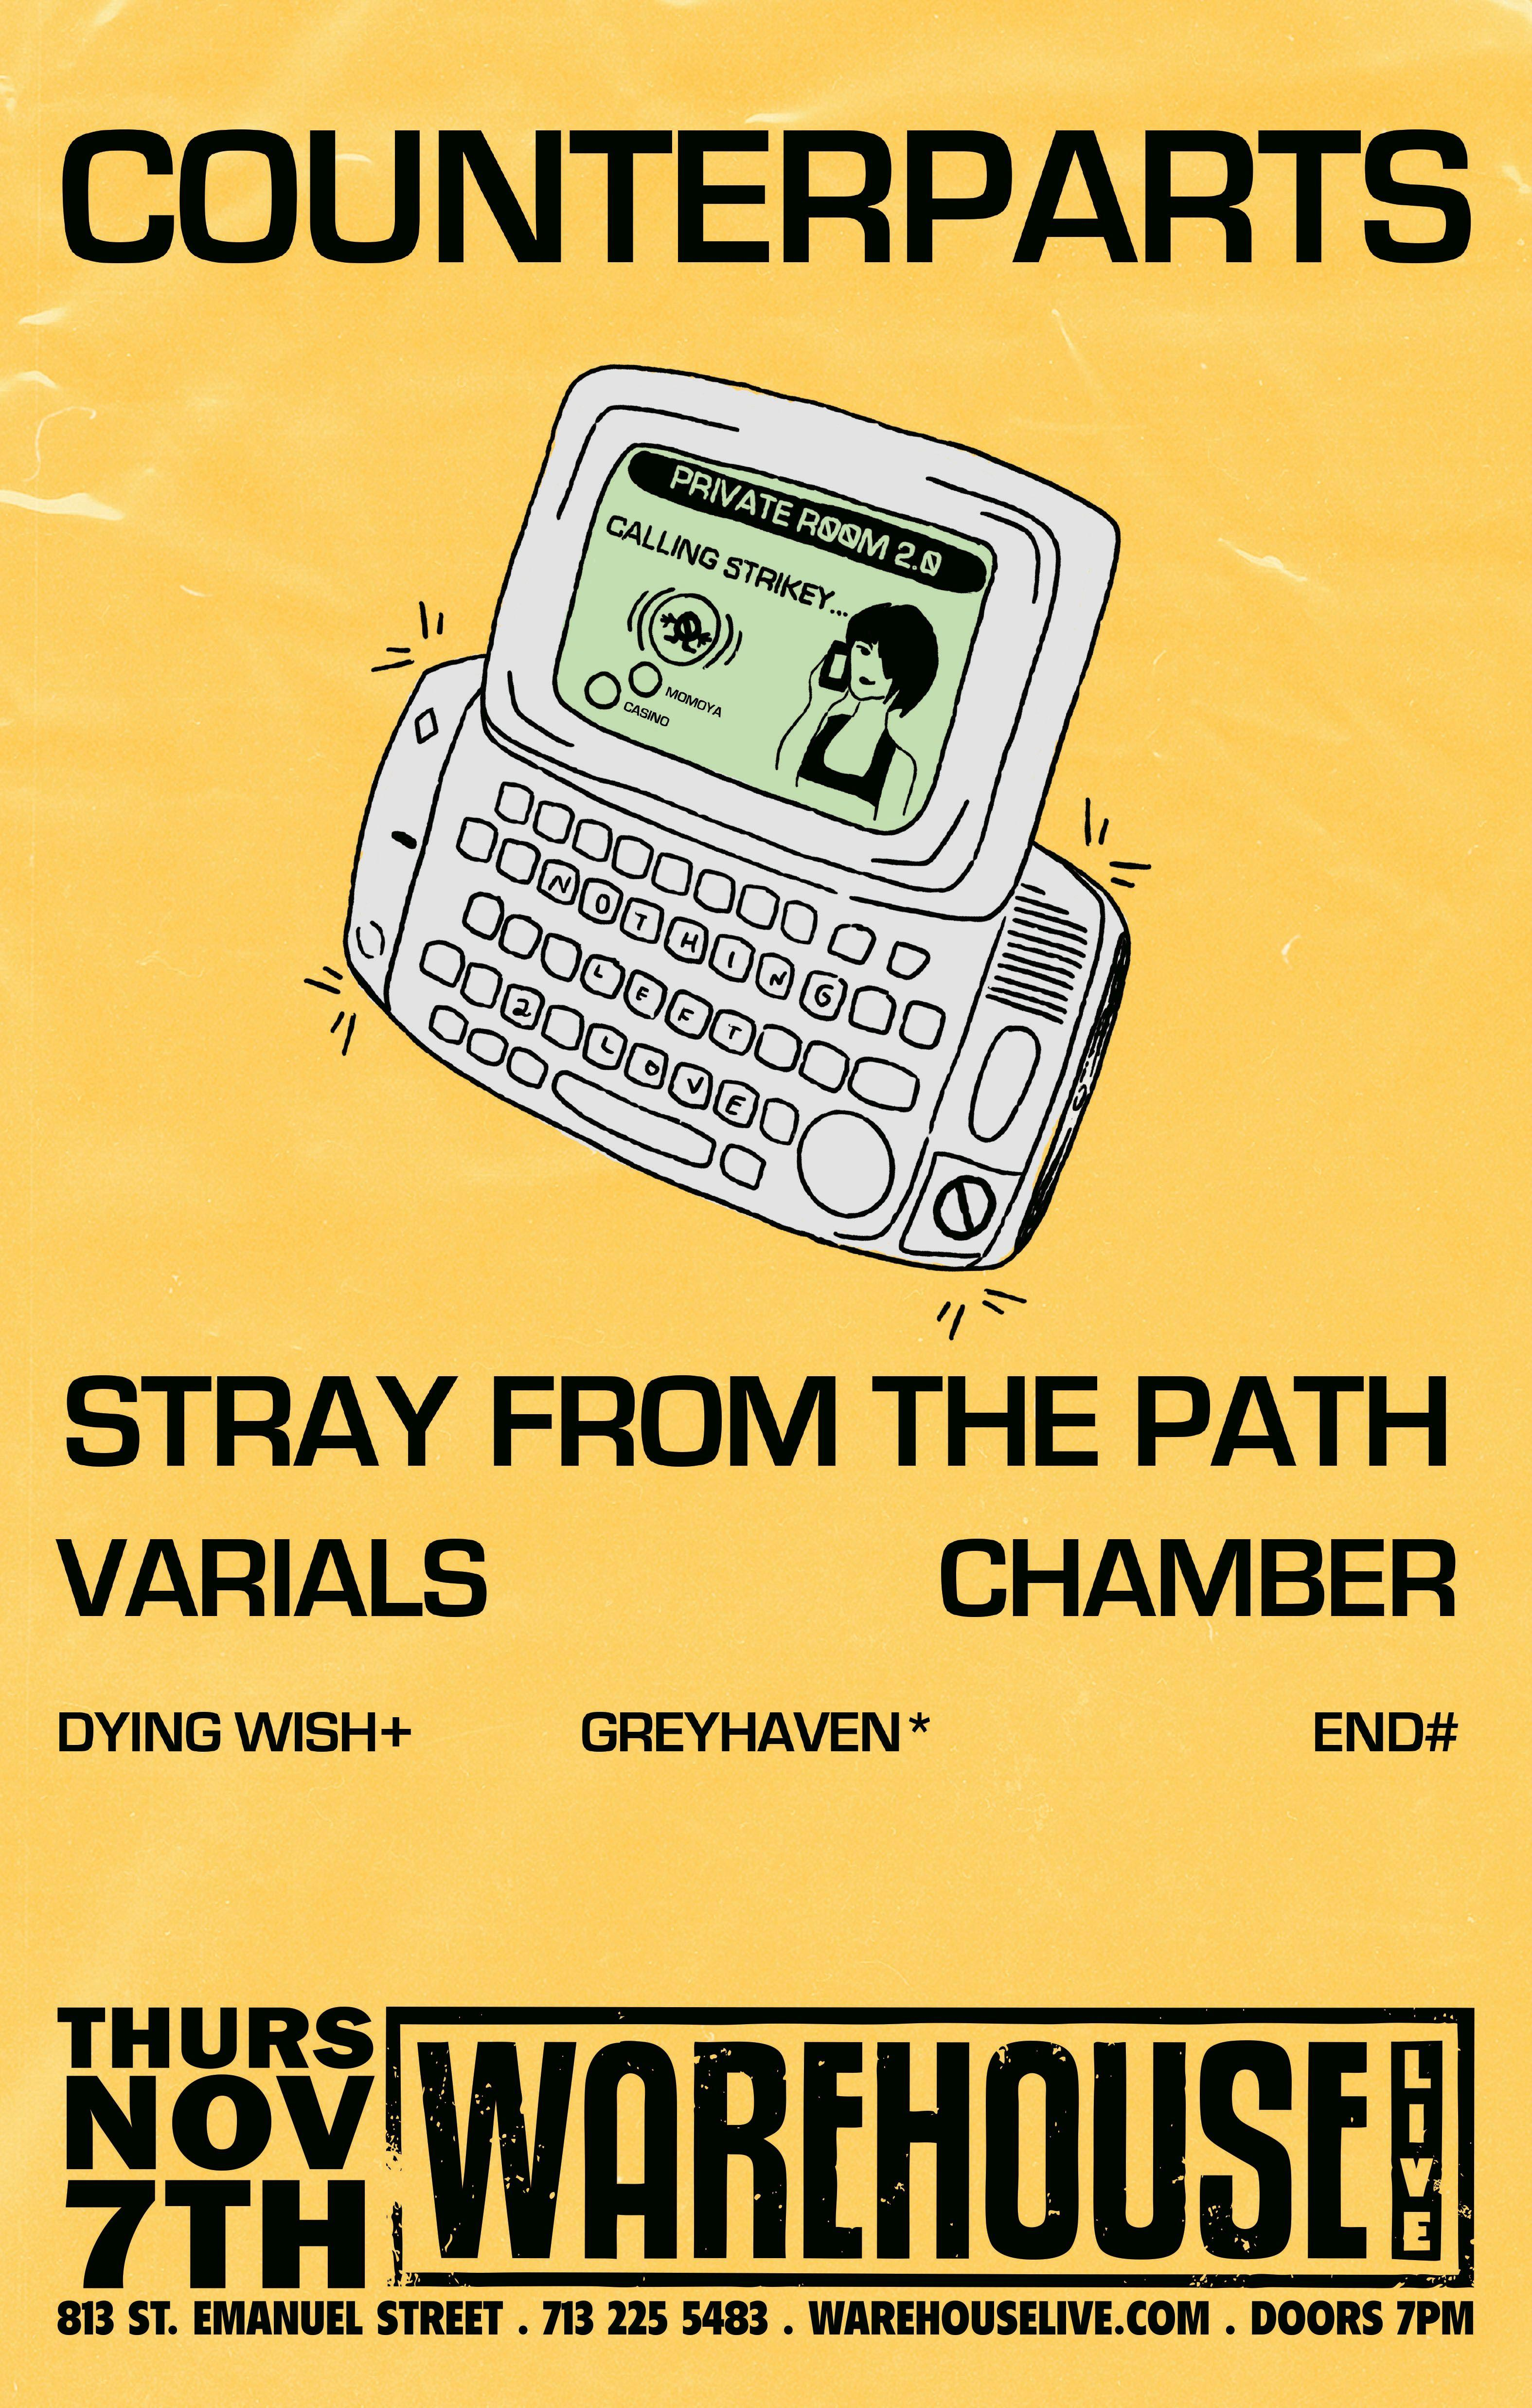 COUNTERPARTS, STRAY FROM THE PATH, VARIALS, CHAMBER, GREYHAVEN